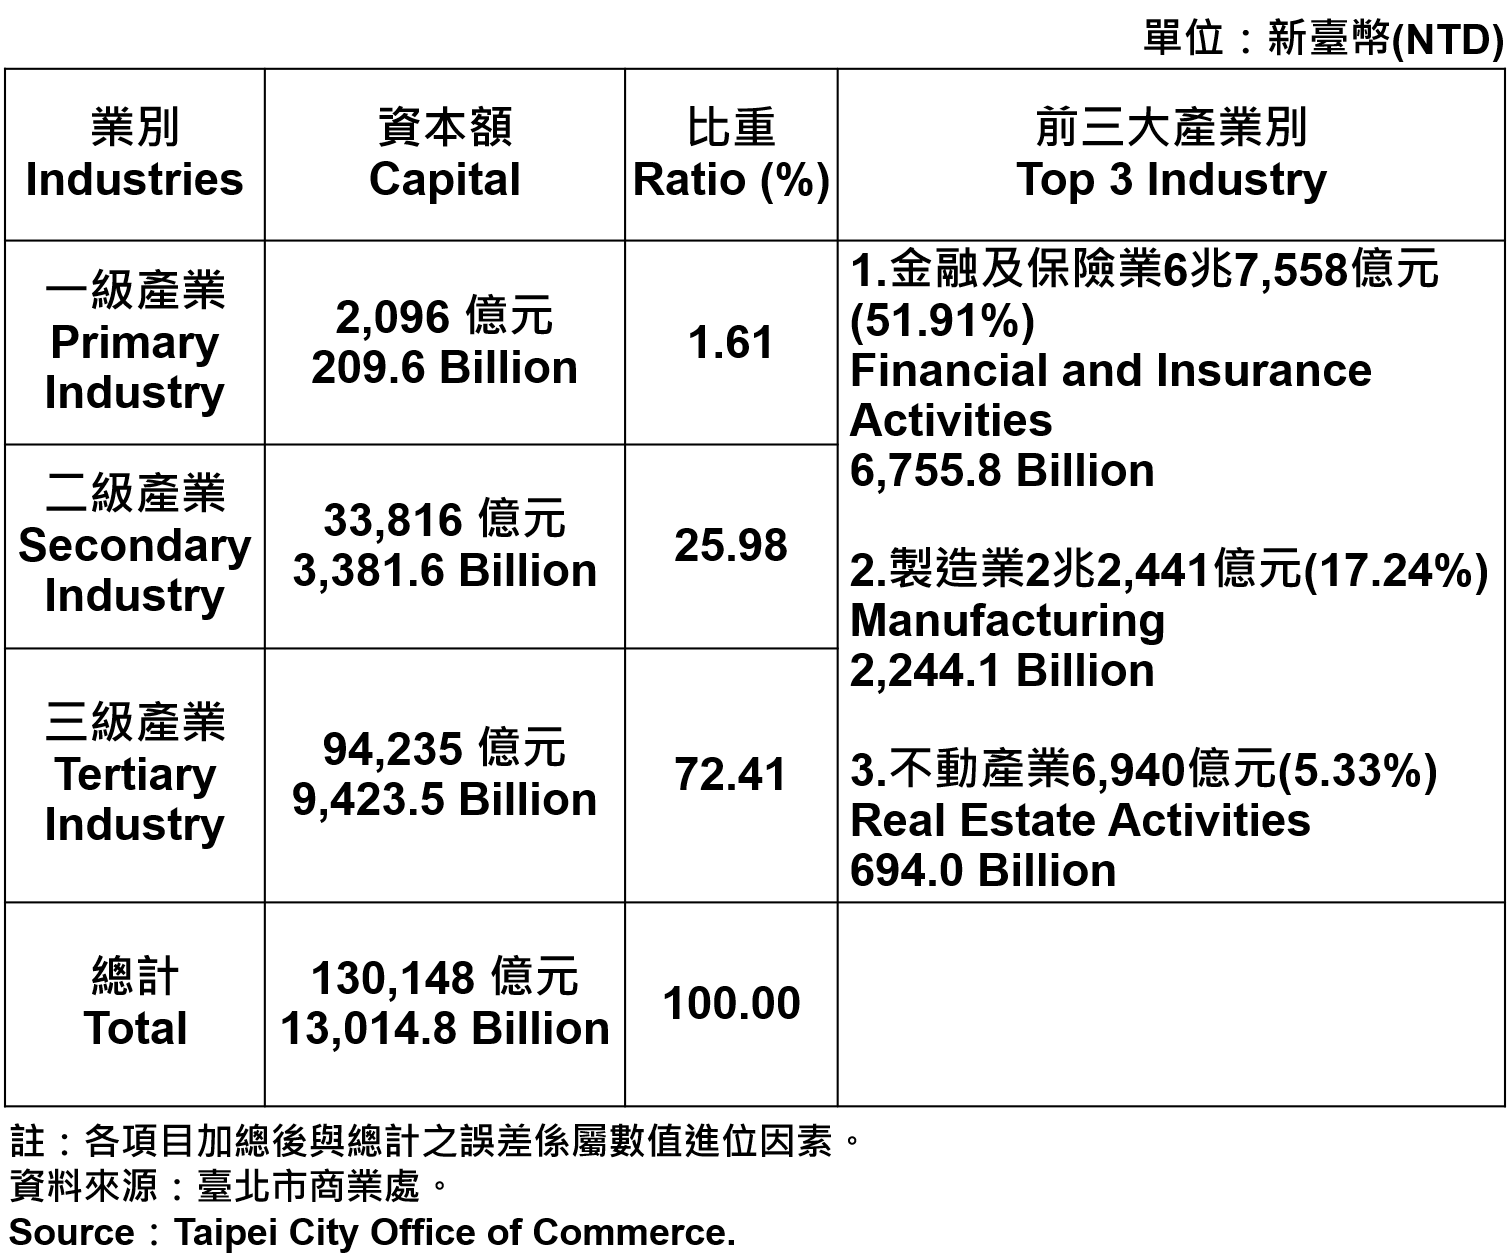 臺北市登記之公司資本額—2019 Total Capital of Companies and Firms Registered in Taipei City—2019